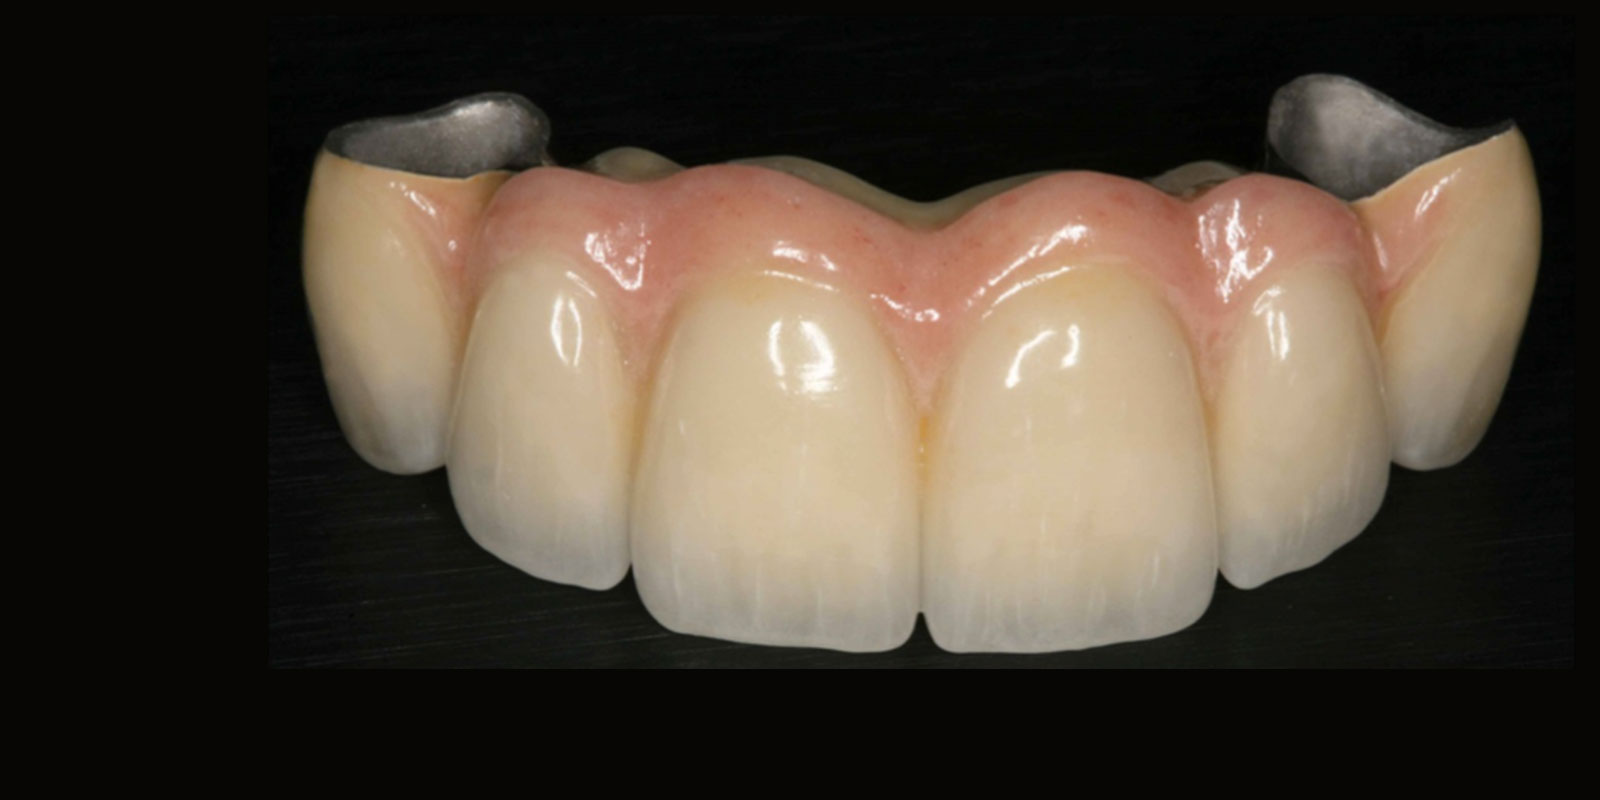 Fixed Prosthodontics Foundation For Oral Facial